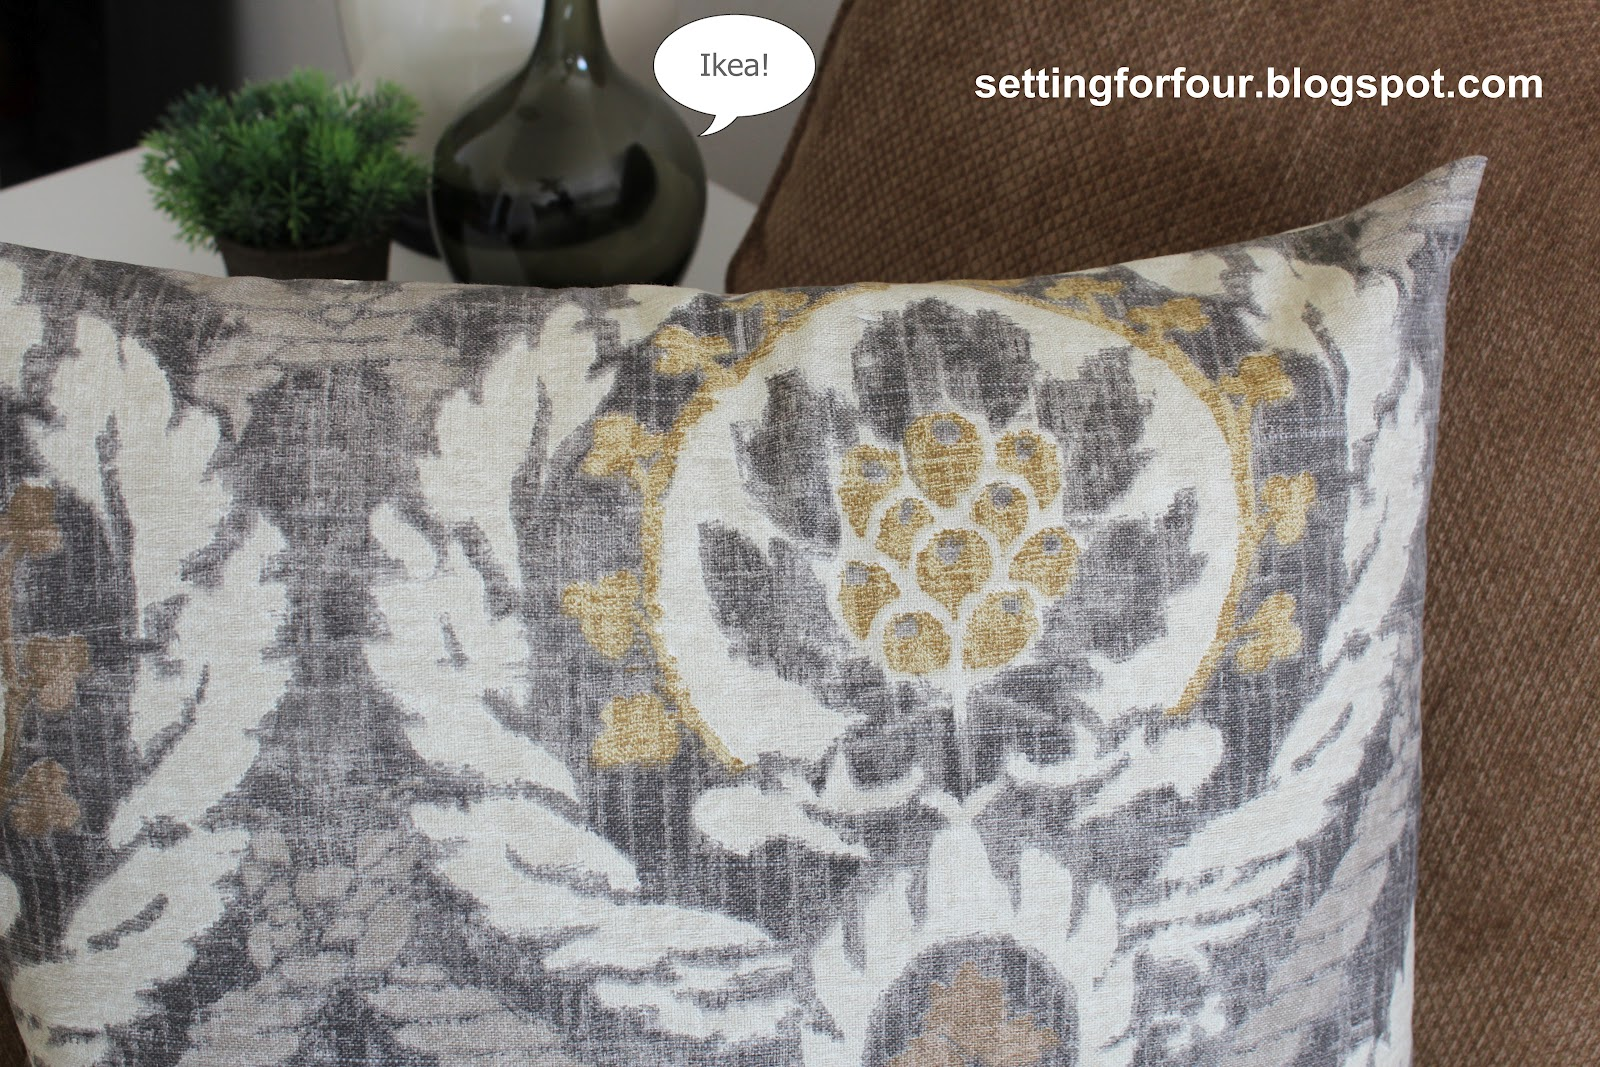 diy pillow cover 5 minutes to make setting for four make your own quick and easy pillow covers for your bedroom living room